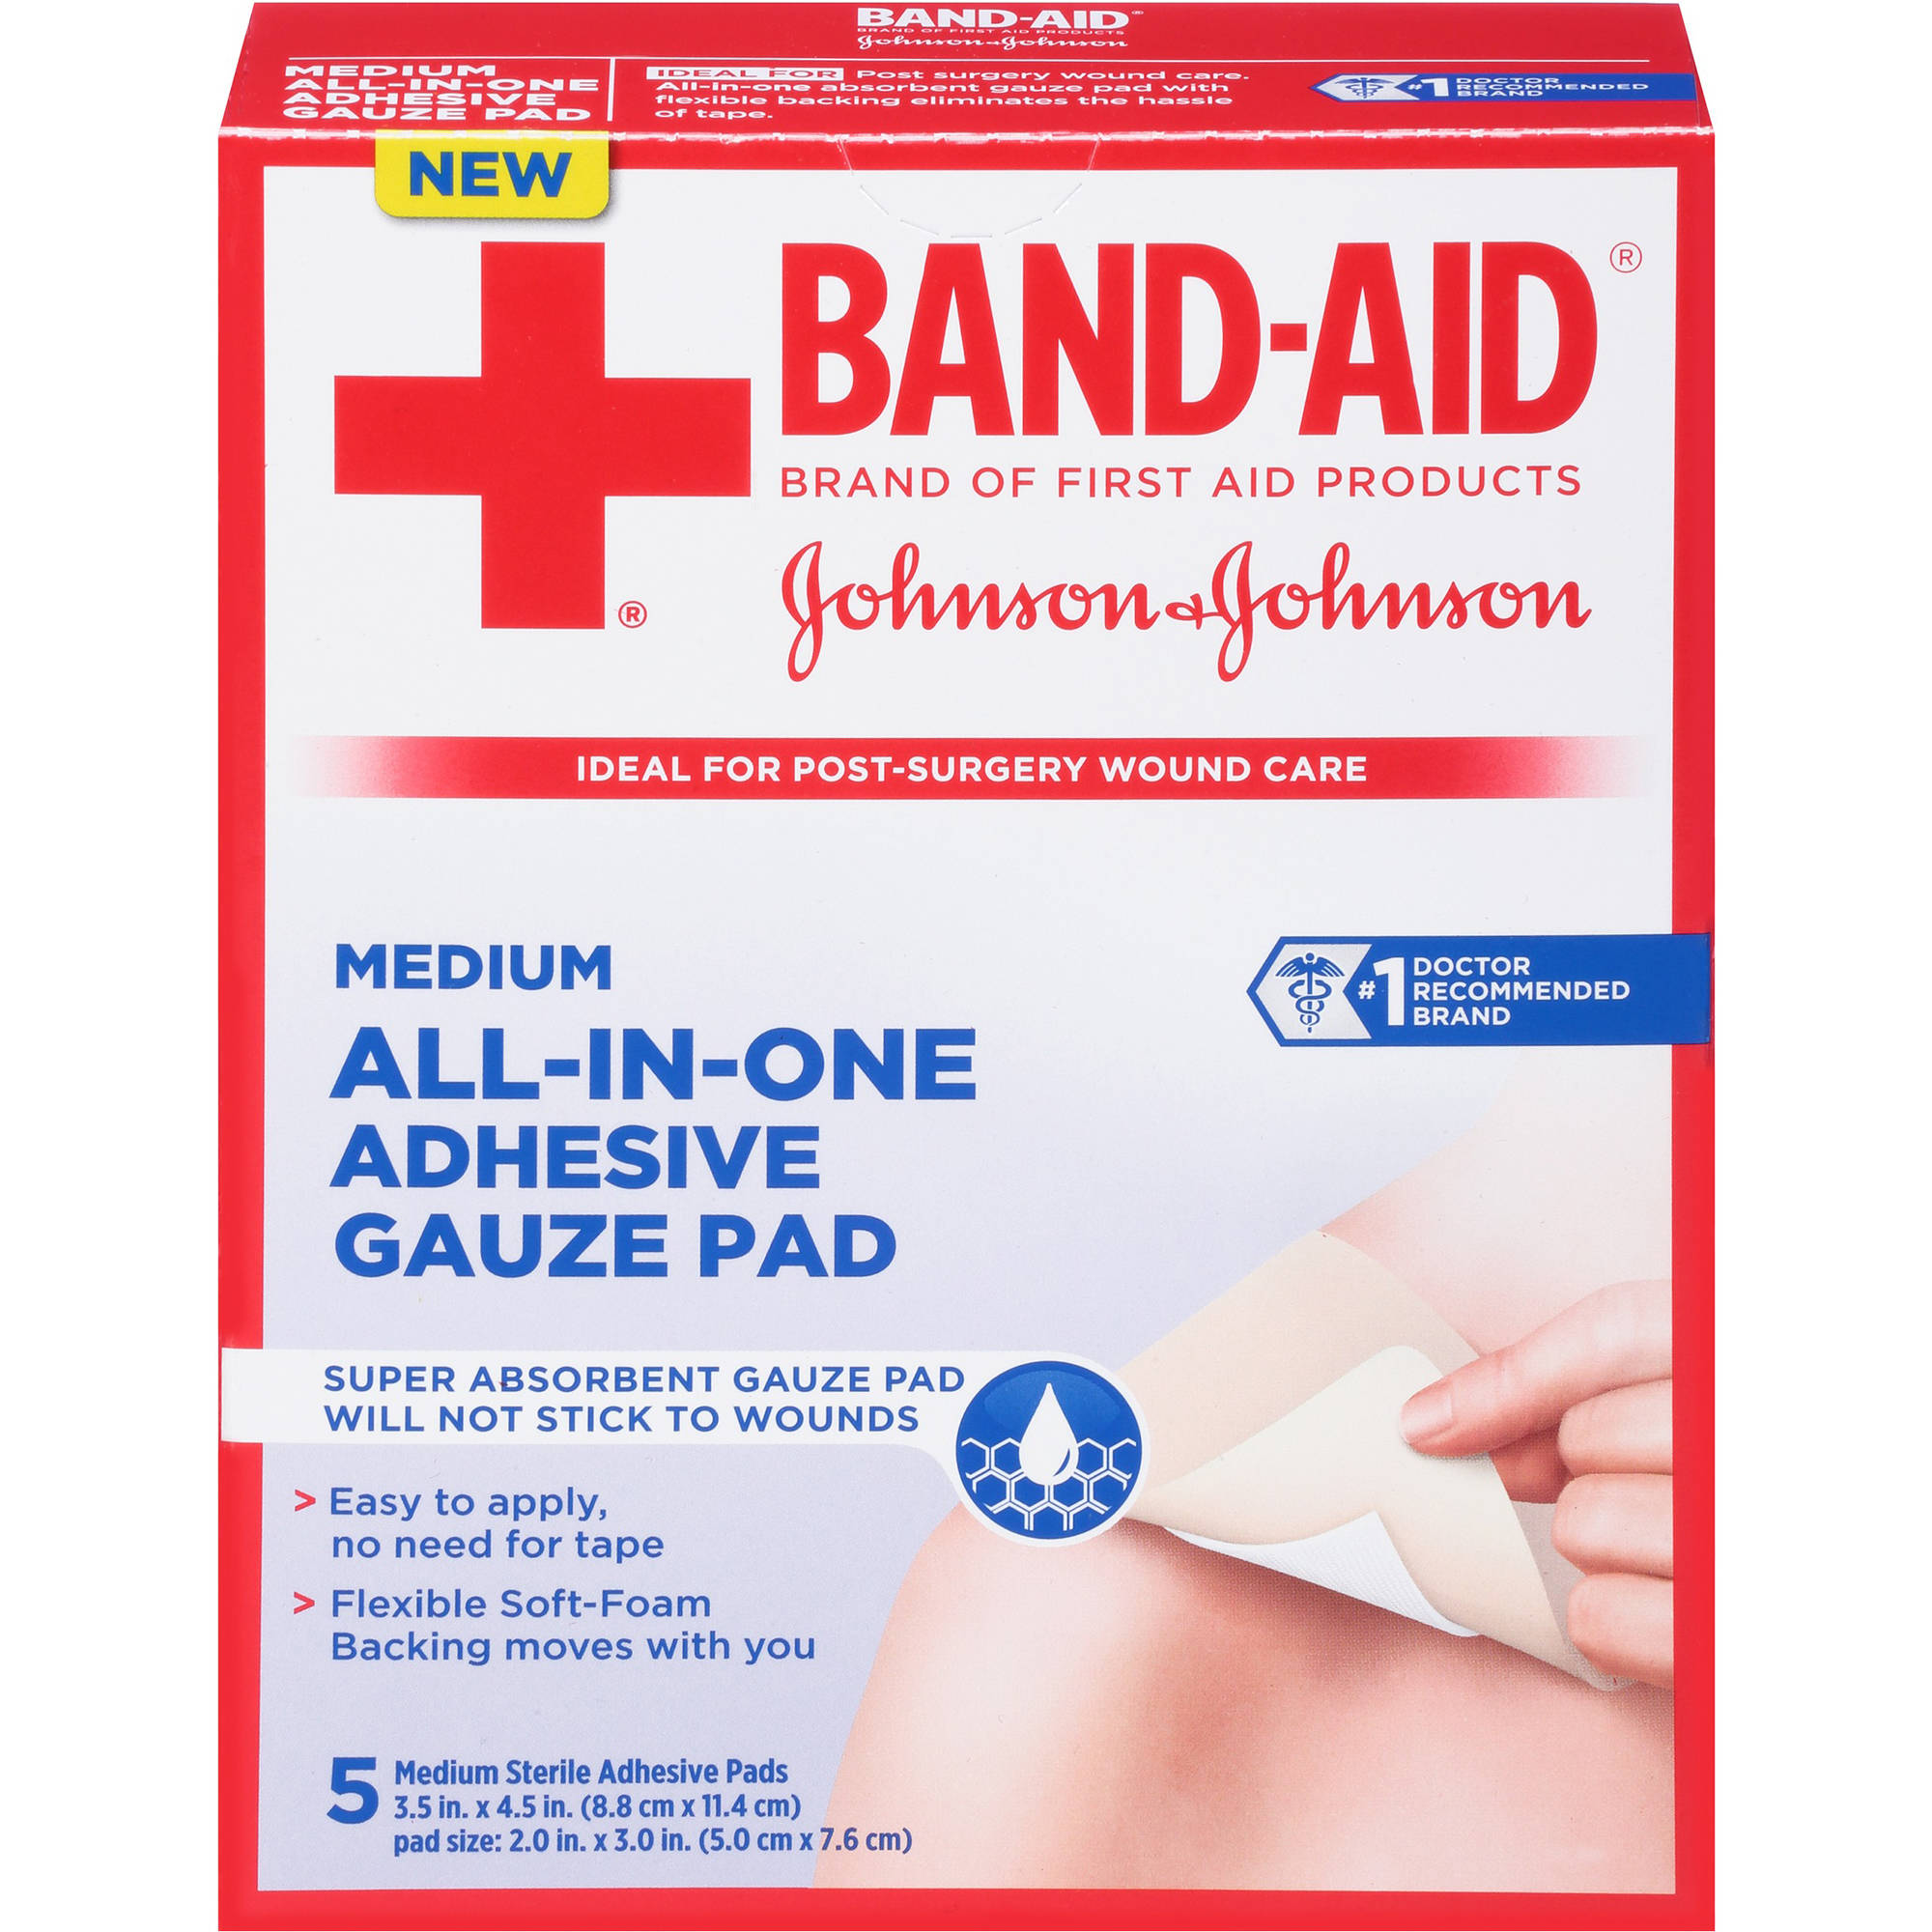 Band-Aid Brand First Aid All-In-One Adhesive Gauze Pad, 5 count